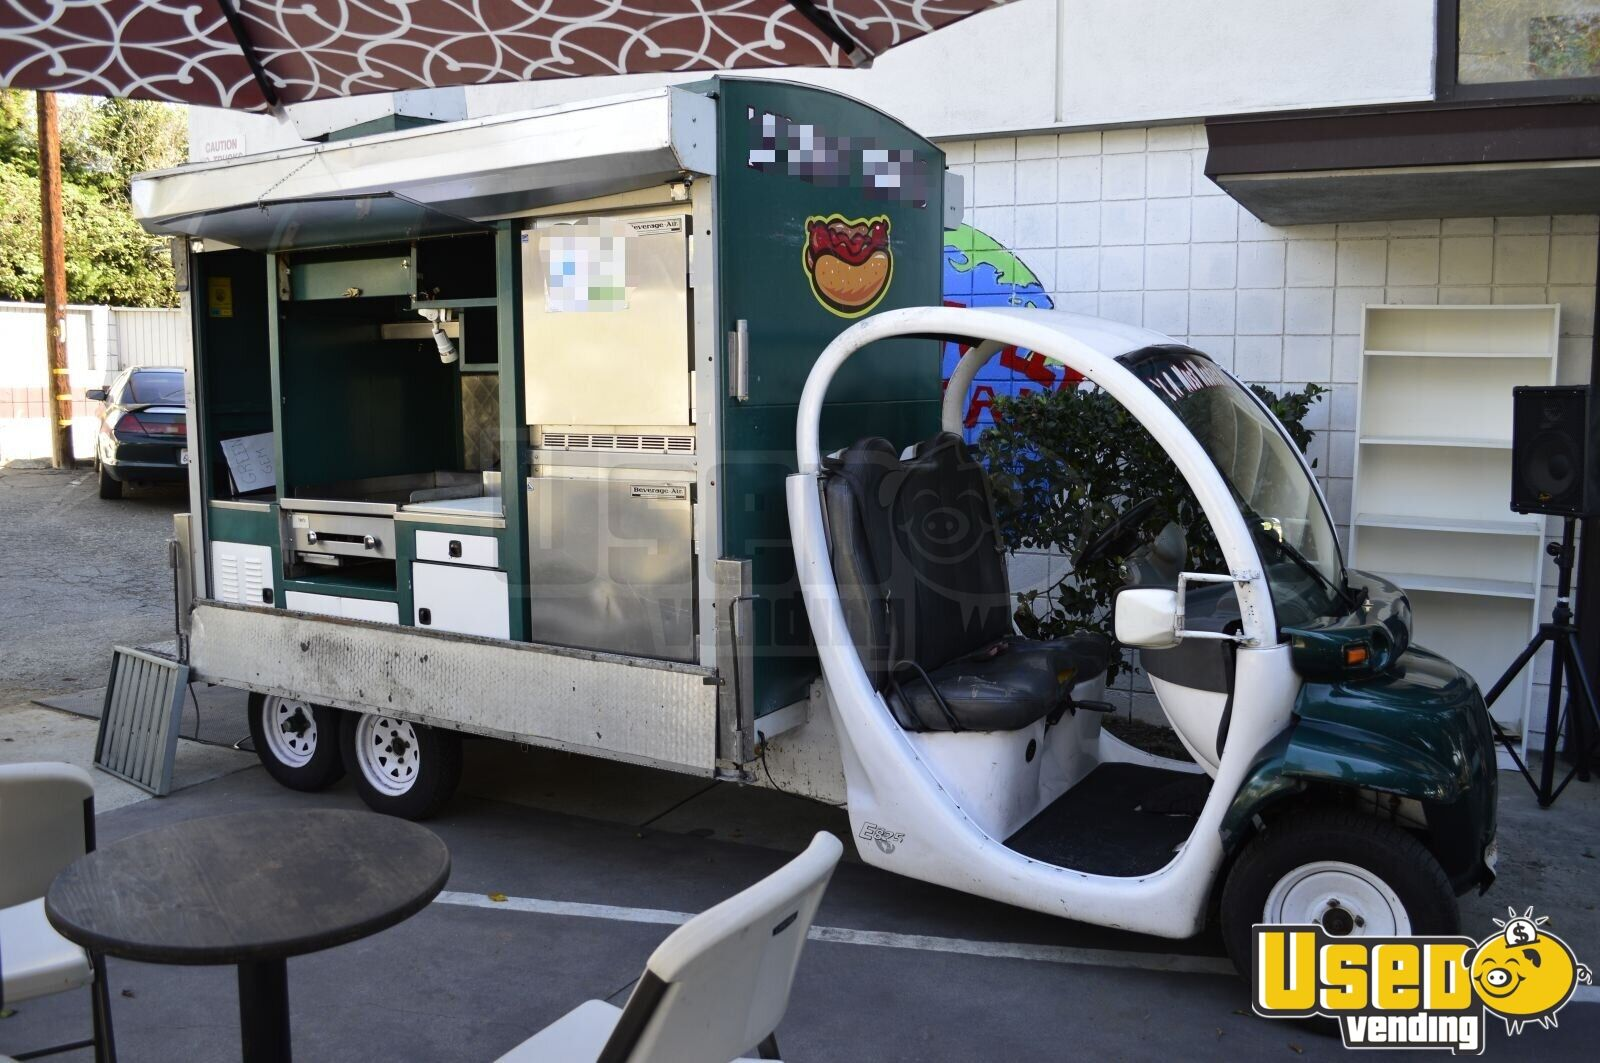 2005 Gem Cart + Kitchen Lunch Serving Food Truck Concession Window California for Sale - 2